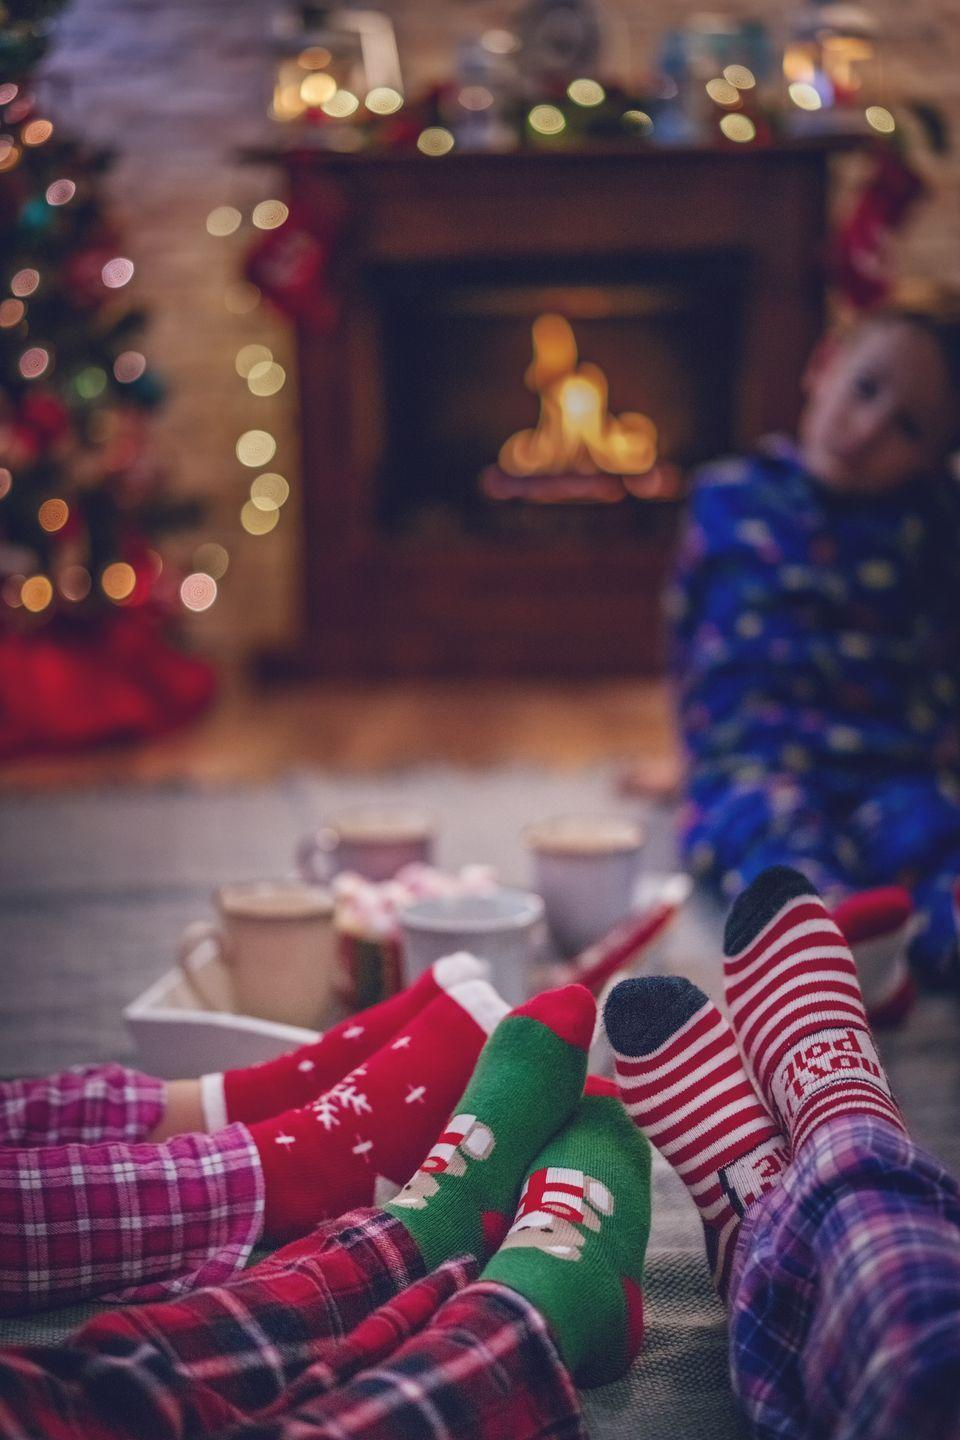 """<p>Throw on your matching Christmas jammies and your <a href=""""https://www.oprahmag.com/style/g28614181/fuzzy-christmas-socks/"""" rel=""""nofollow noopener"""" target=""""_blank"""" data-ylk=""""slk:fuzziest socks"""" class=""""link rapid-noclick-resp"""">fuzziest socks</a>, arrange sleeping bags under the tree, and have a family sleepover under the twinkling lights.</p>"""